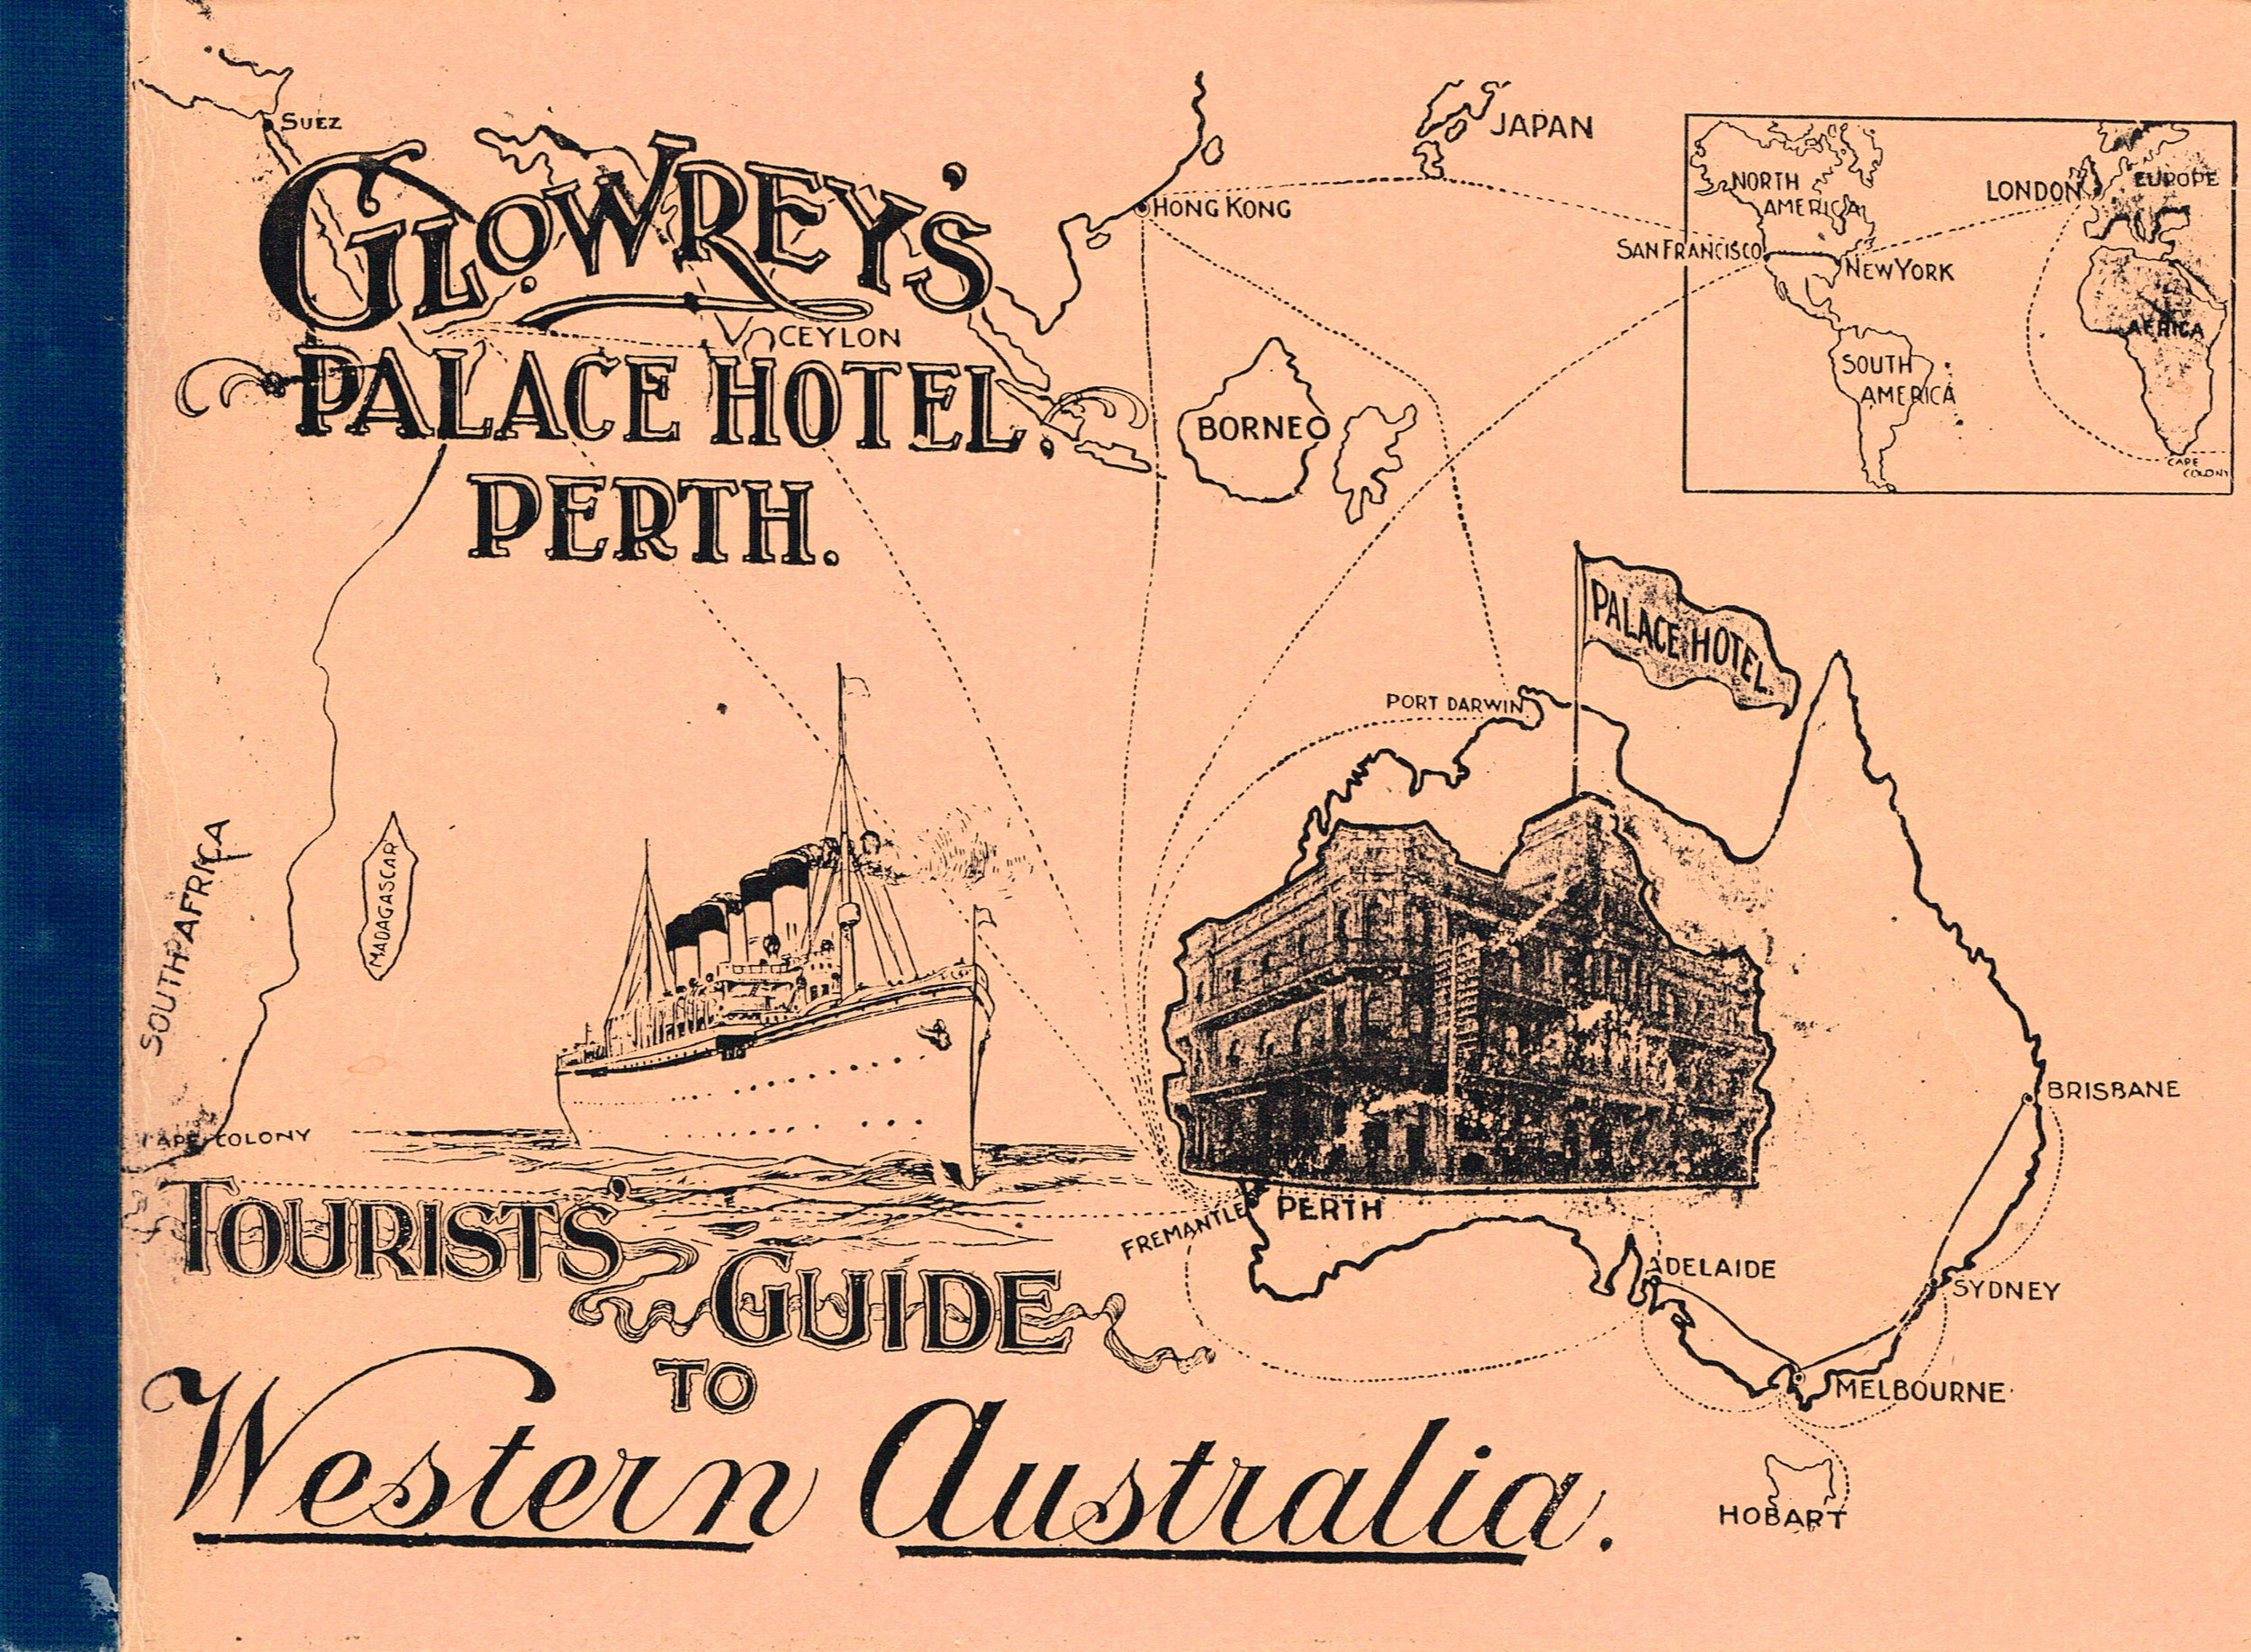 Glowrey's Place Hotel Perth: tourists' guide to Western Australia  N/A.